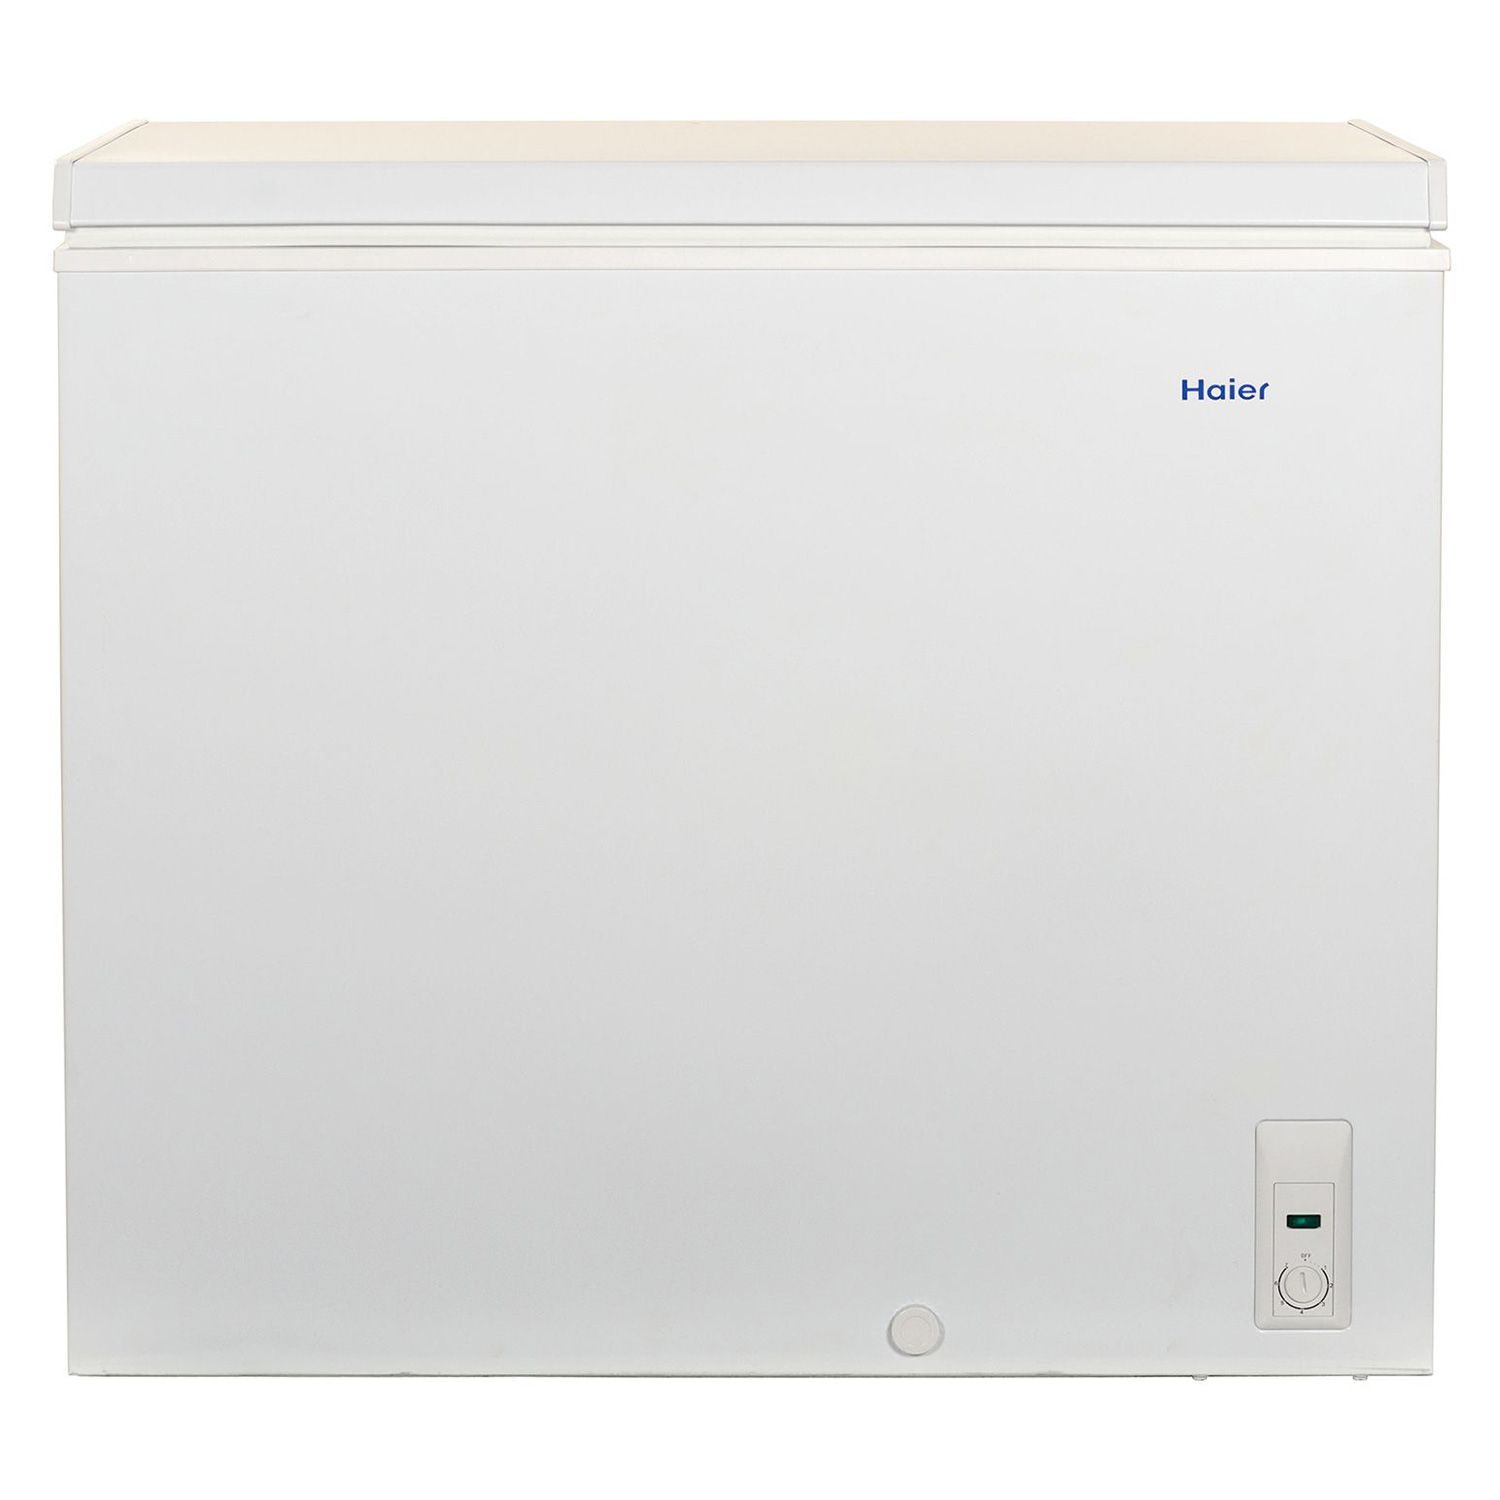 Haier 7.1 CU FT Chest Freezer at Sears.com